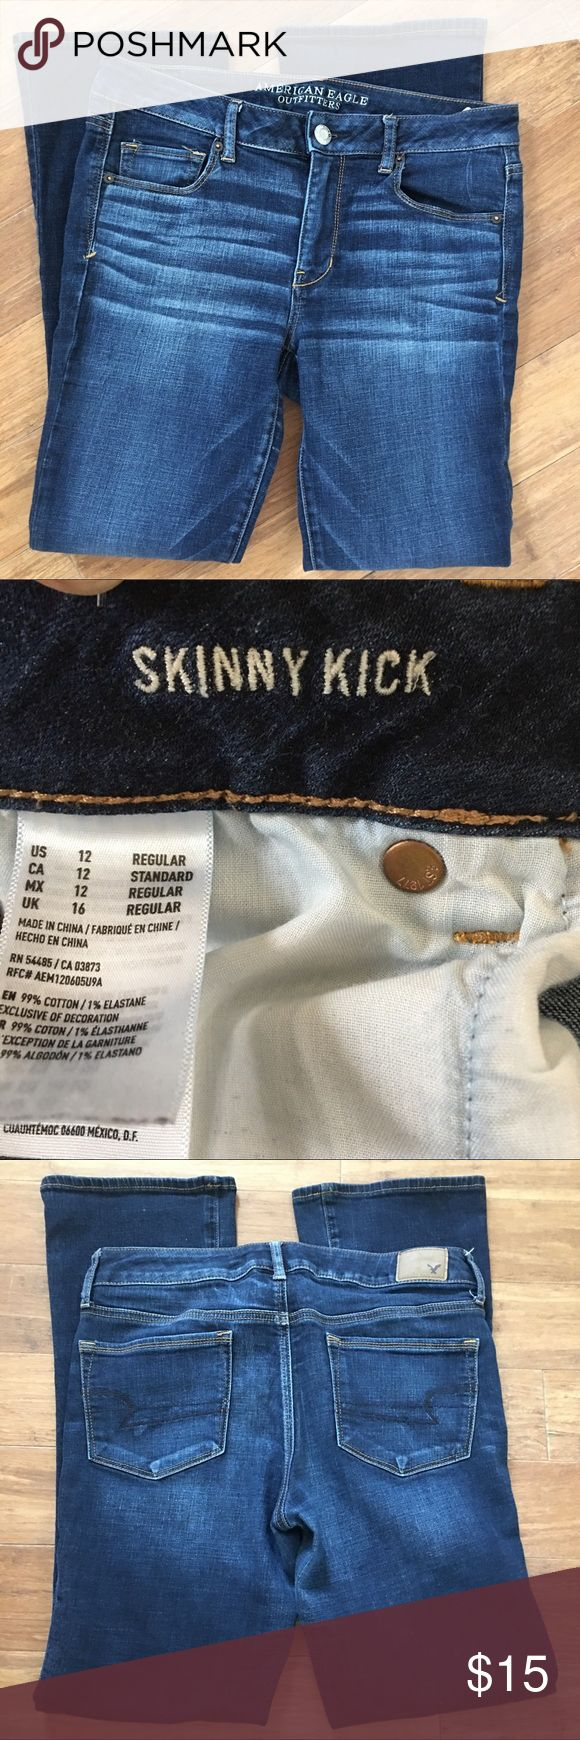 American Eagle Jeans Skinny Kick style American Eagle Outfitters Jeans Skinny